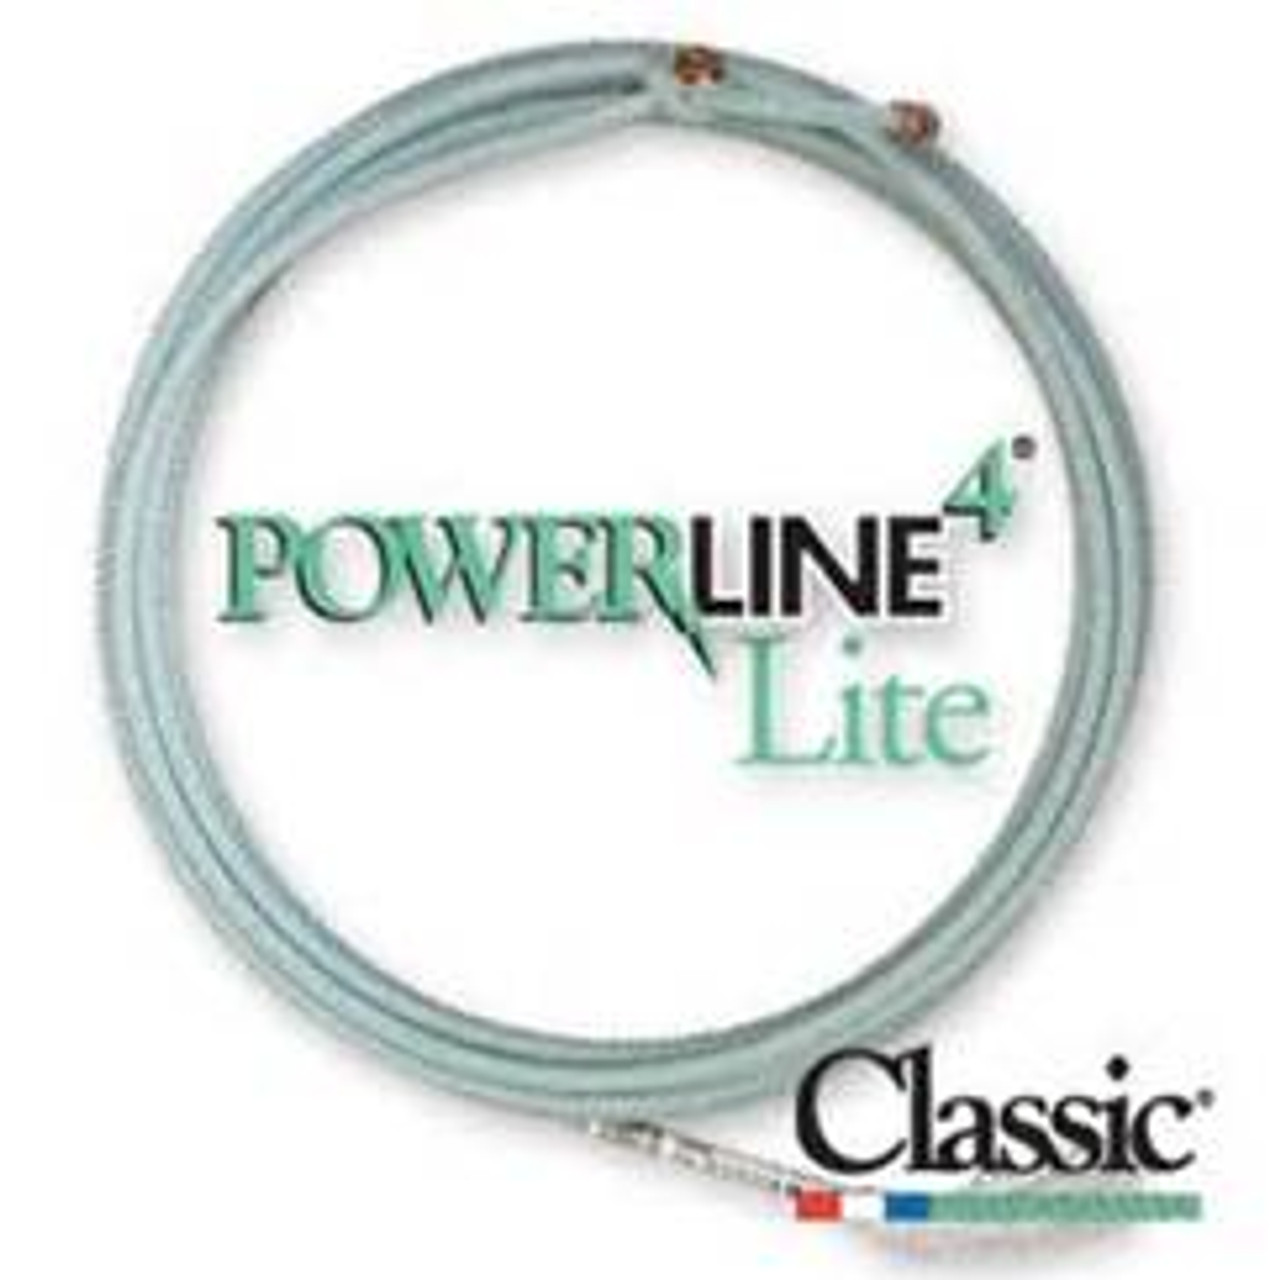 The Powerline4 combines four strand construction with the feel and handle of our best selling blended rope, the MoneyMaker®. It consists of four strands of twisted nylon and polyester filament wound around a Coretec nylon core. This increases the rope's weight and body, allowing you to throw with more accuracy and control. Plus, the Powerline4's nylon core widens the loop, maximizing your ability to make catches. And its smooth surface permits faster feeds.  SIZE: MS, M, HM, MH